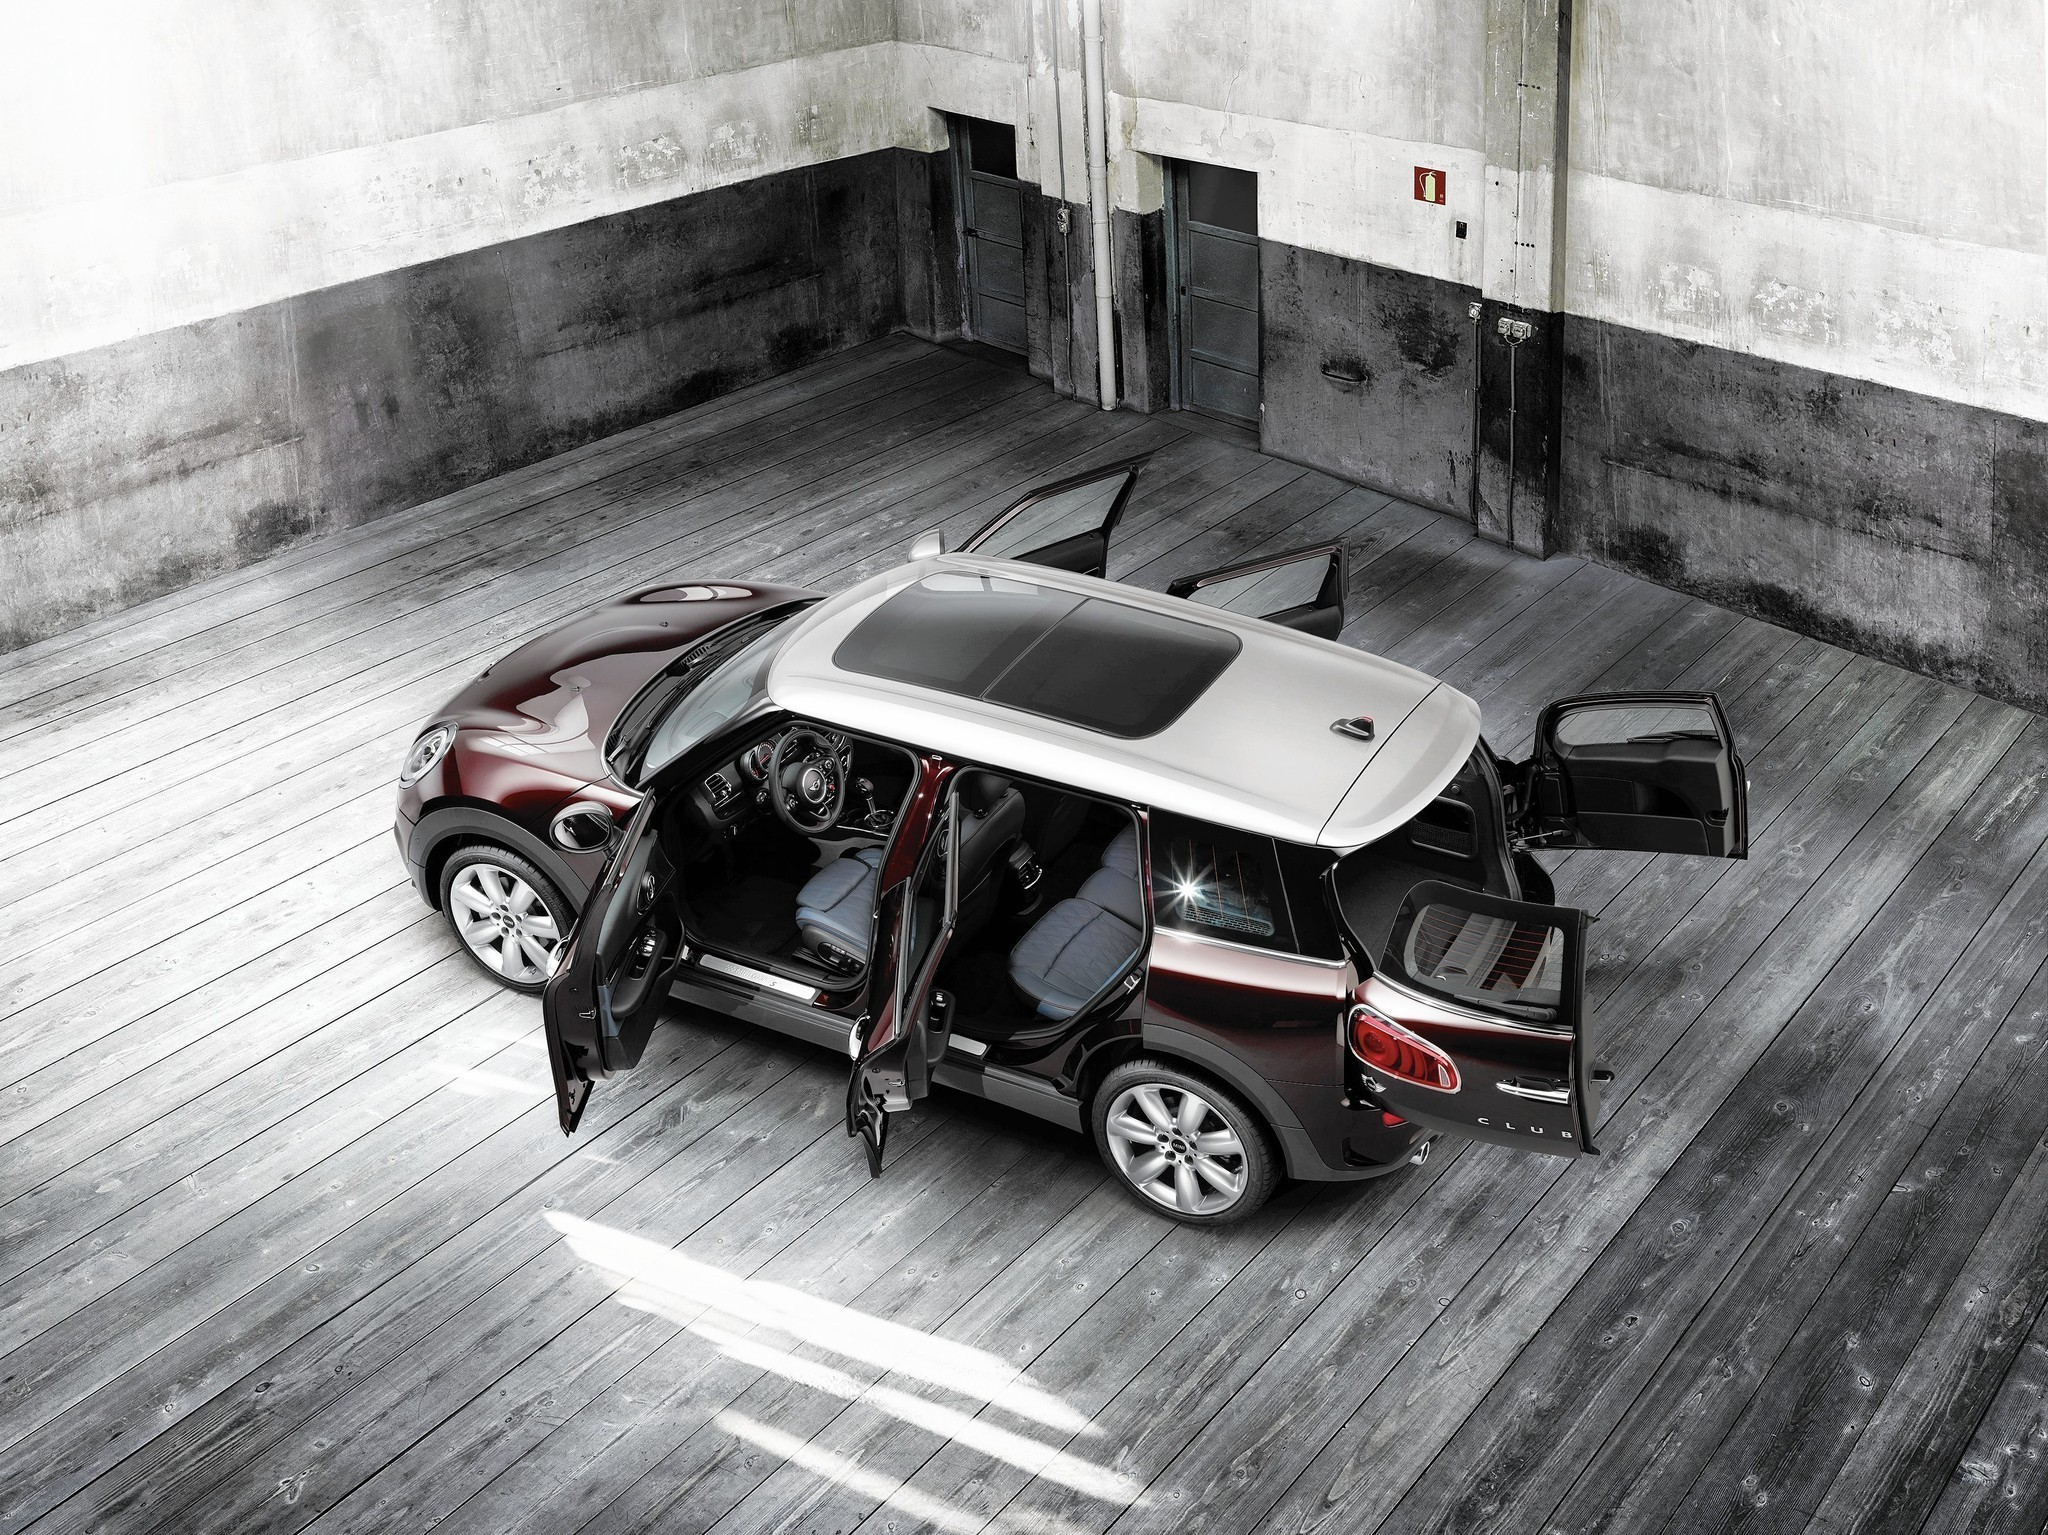 2016 mini cooper s clubman gets big, bruh - chicago tribune